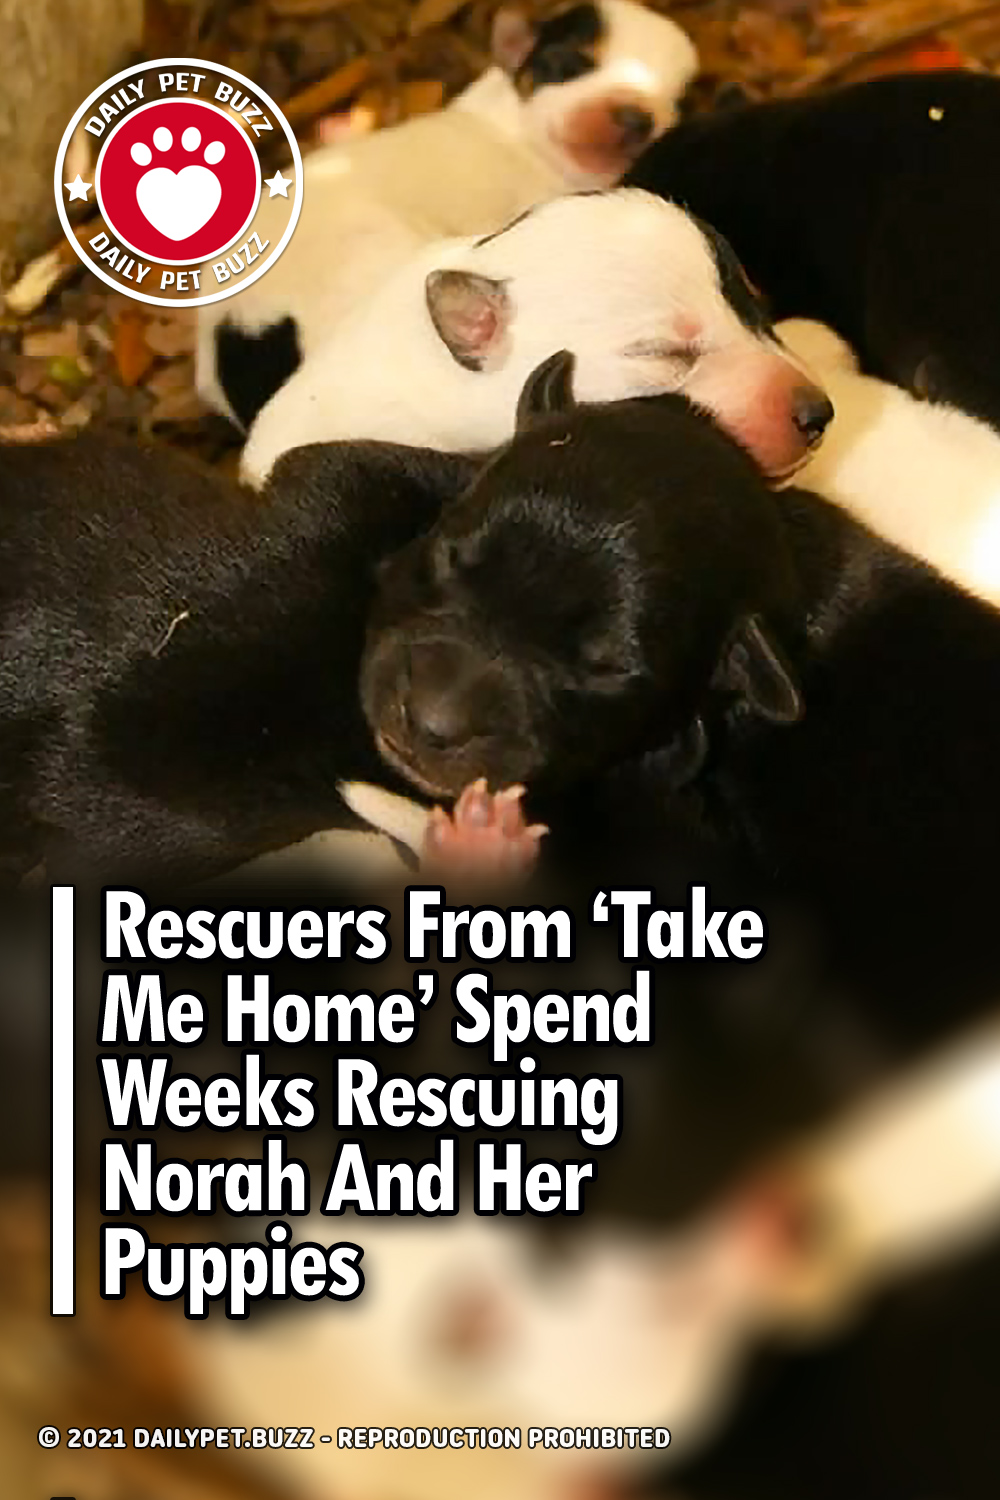 Rescuers From \'Take Me Home\' Spend Weeks Rescuing Norah And Her Puppies